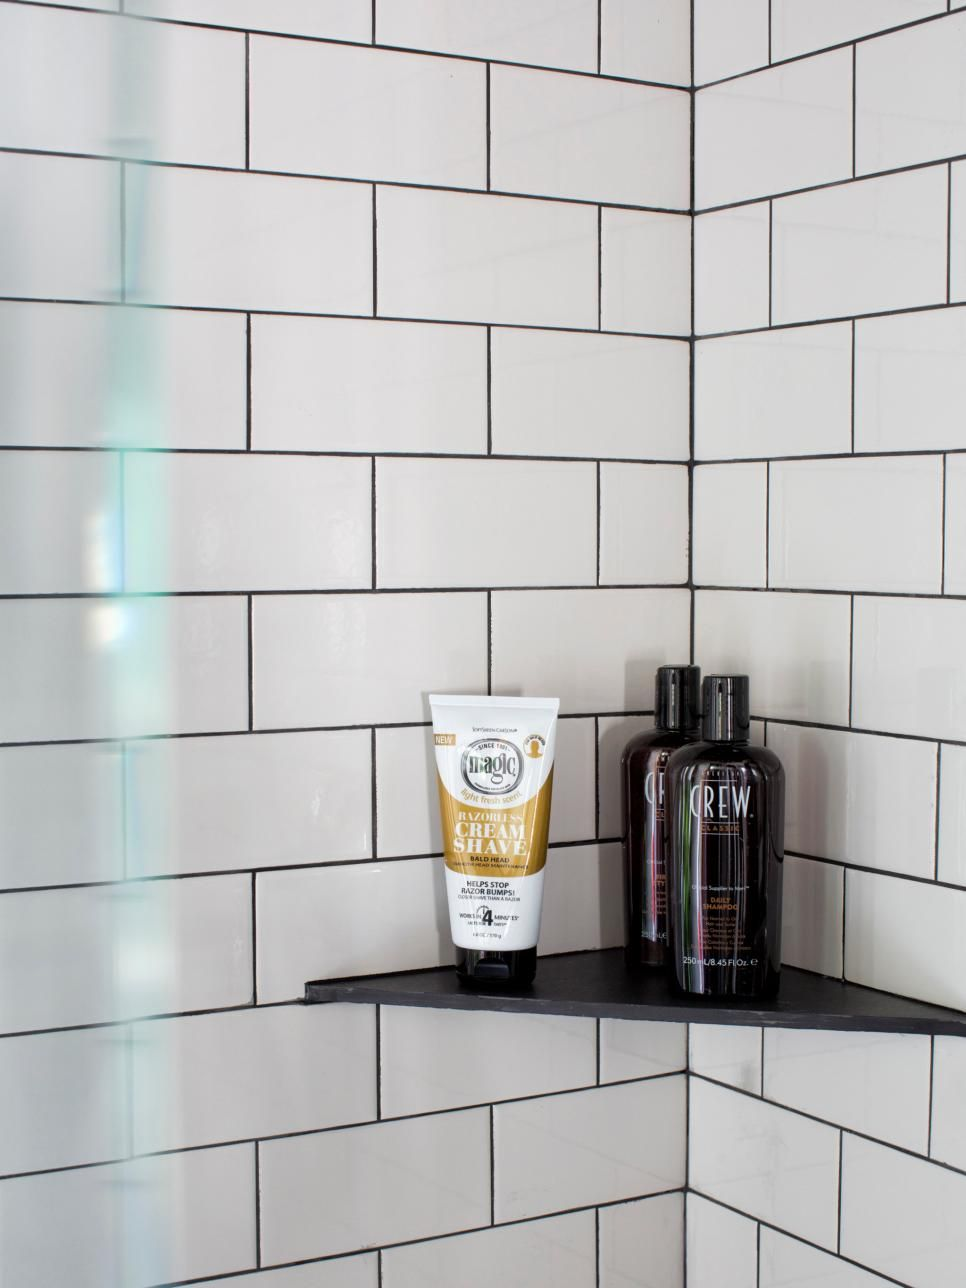 20 Ways To Get More Shower Storage With Images White Tile